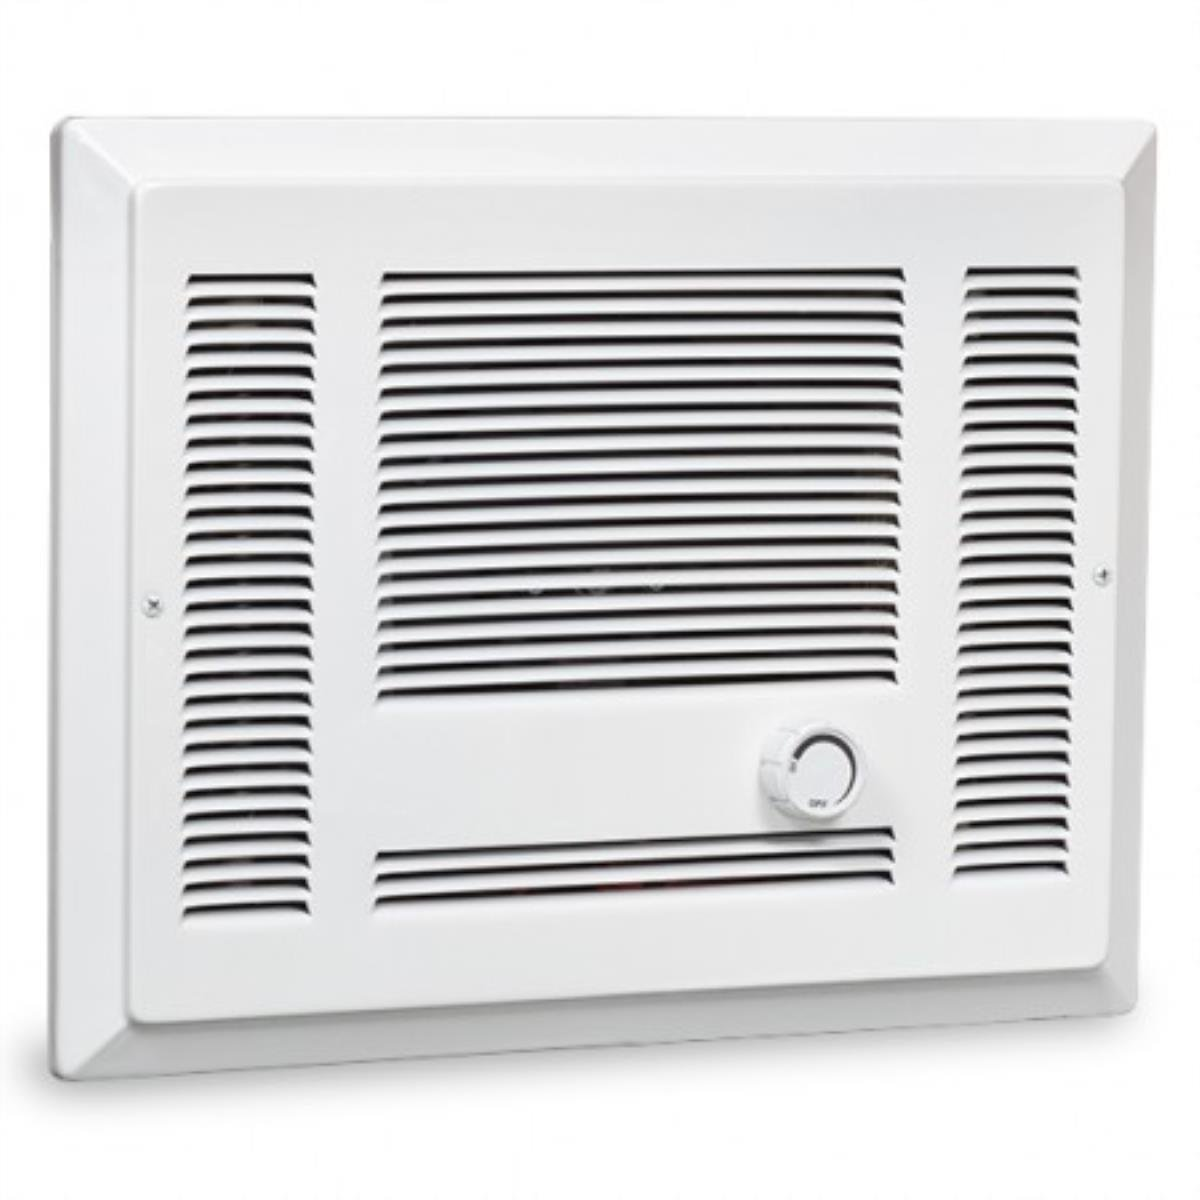 Cadet SL152TW 79220 Sl Series Small Room Heater Wall Heater, Assembly and Grill Only, 240V, 1500W